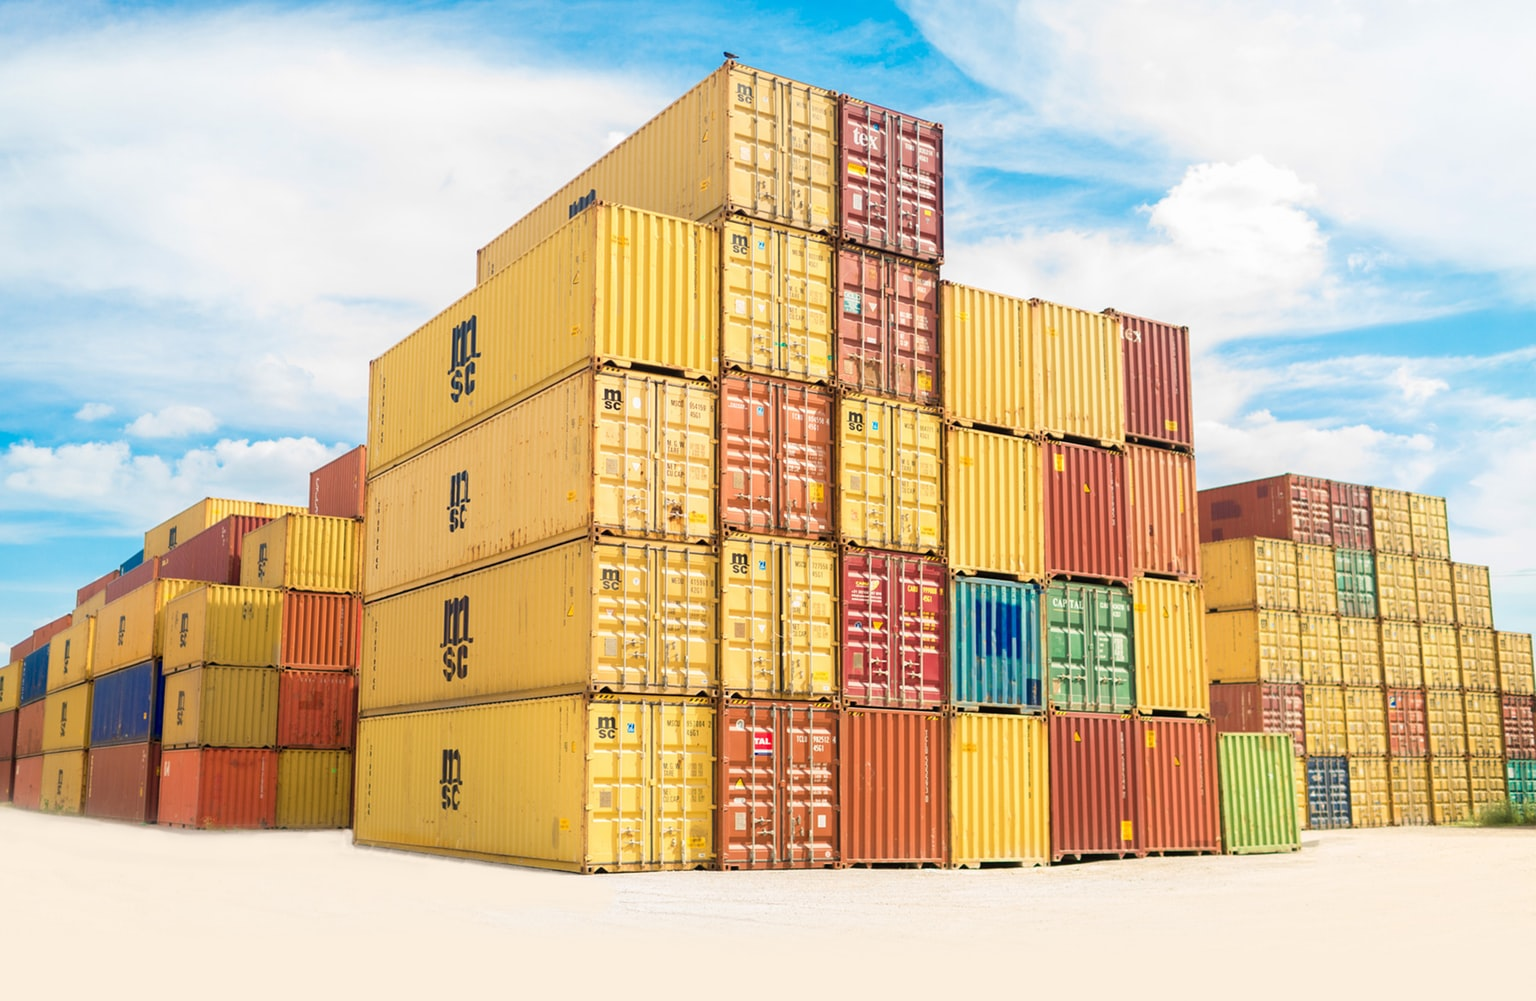 4 Easy Ways to Optimize Your Freight Shipments and Save Money